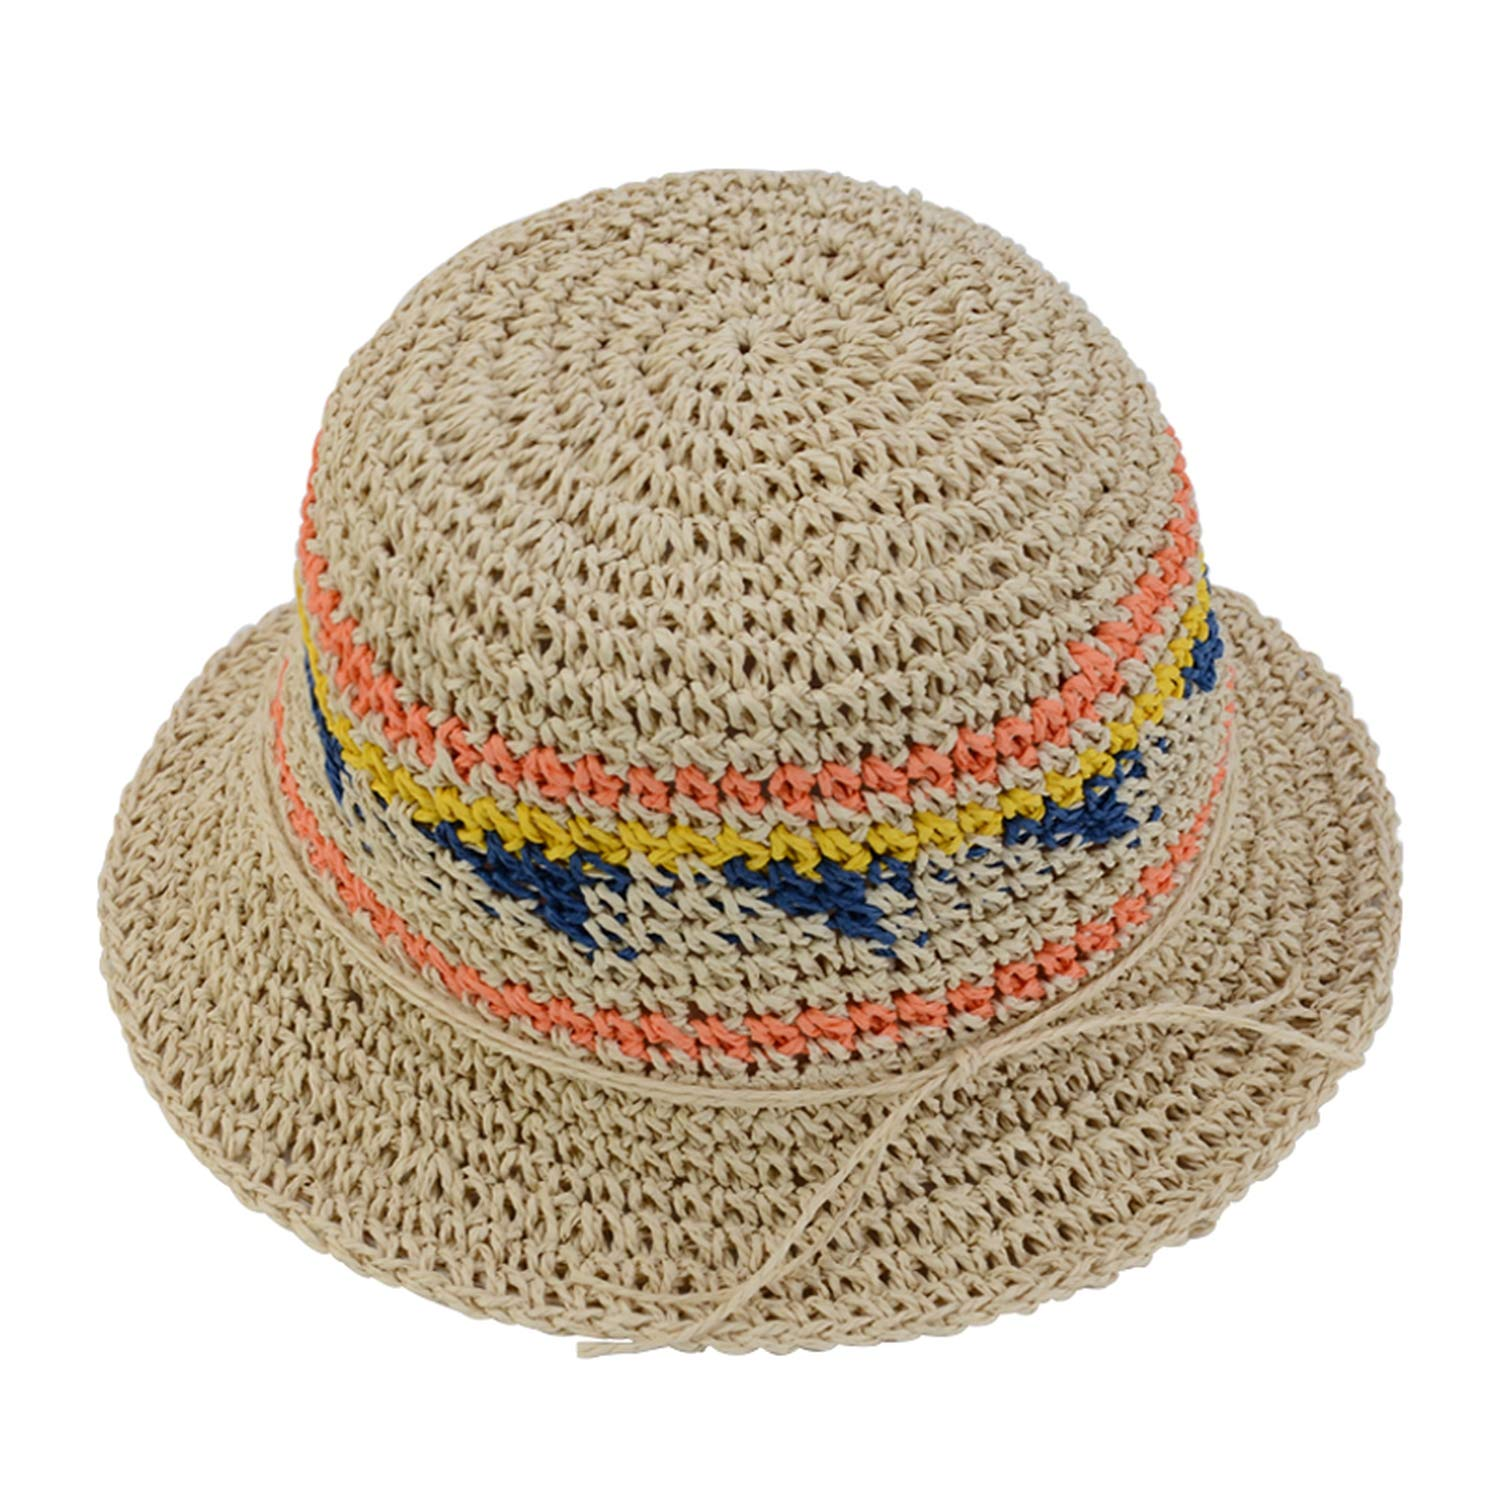 Summer Hats for Women Colorful Straw Hat Bucket Hat Beach Panama Cap Vacation Holiday Travel Bohemian Style